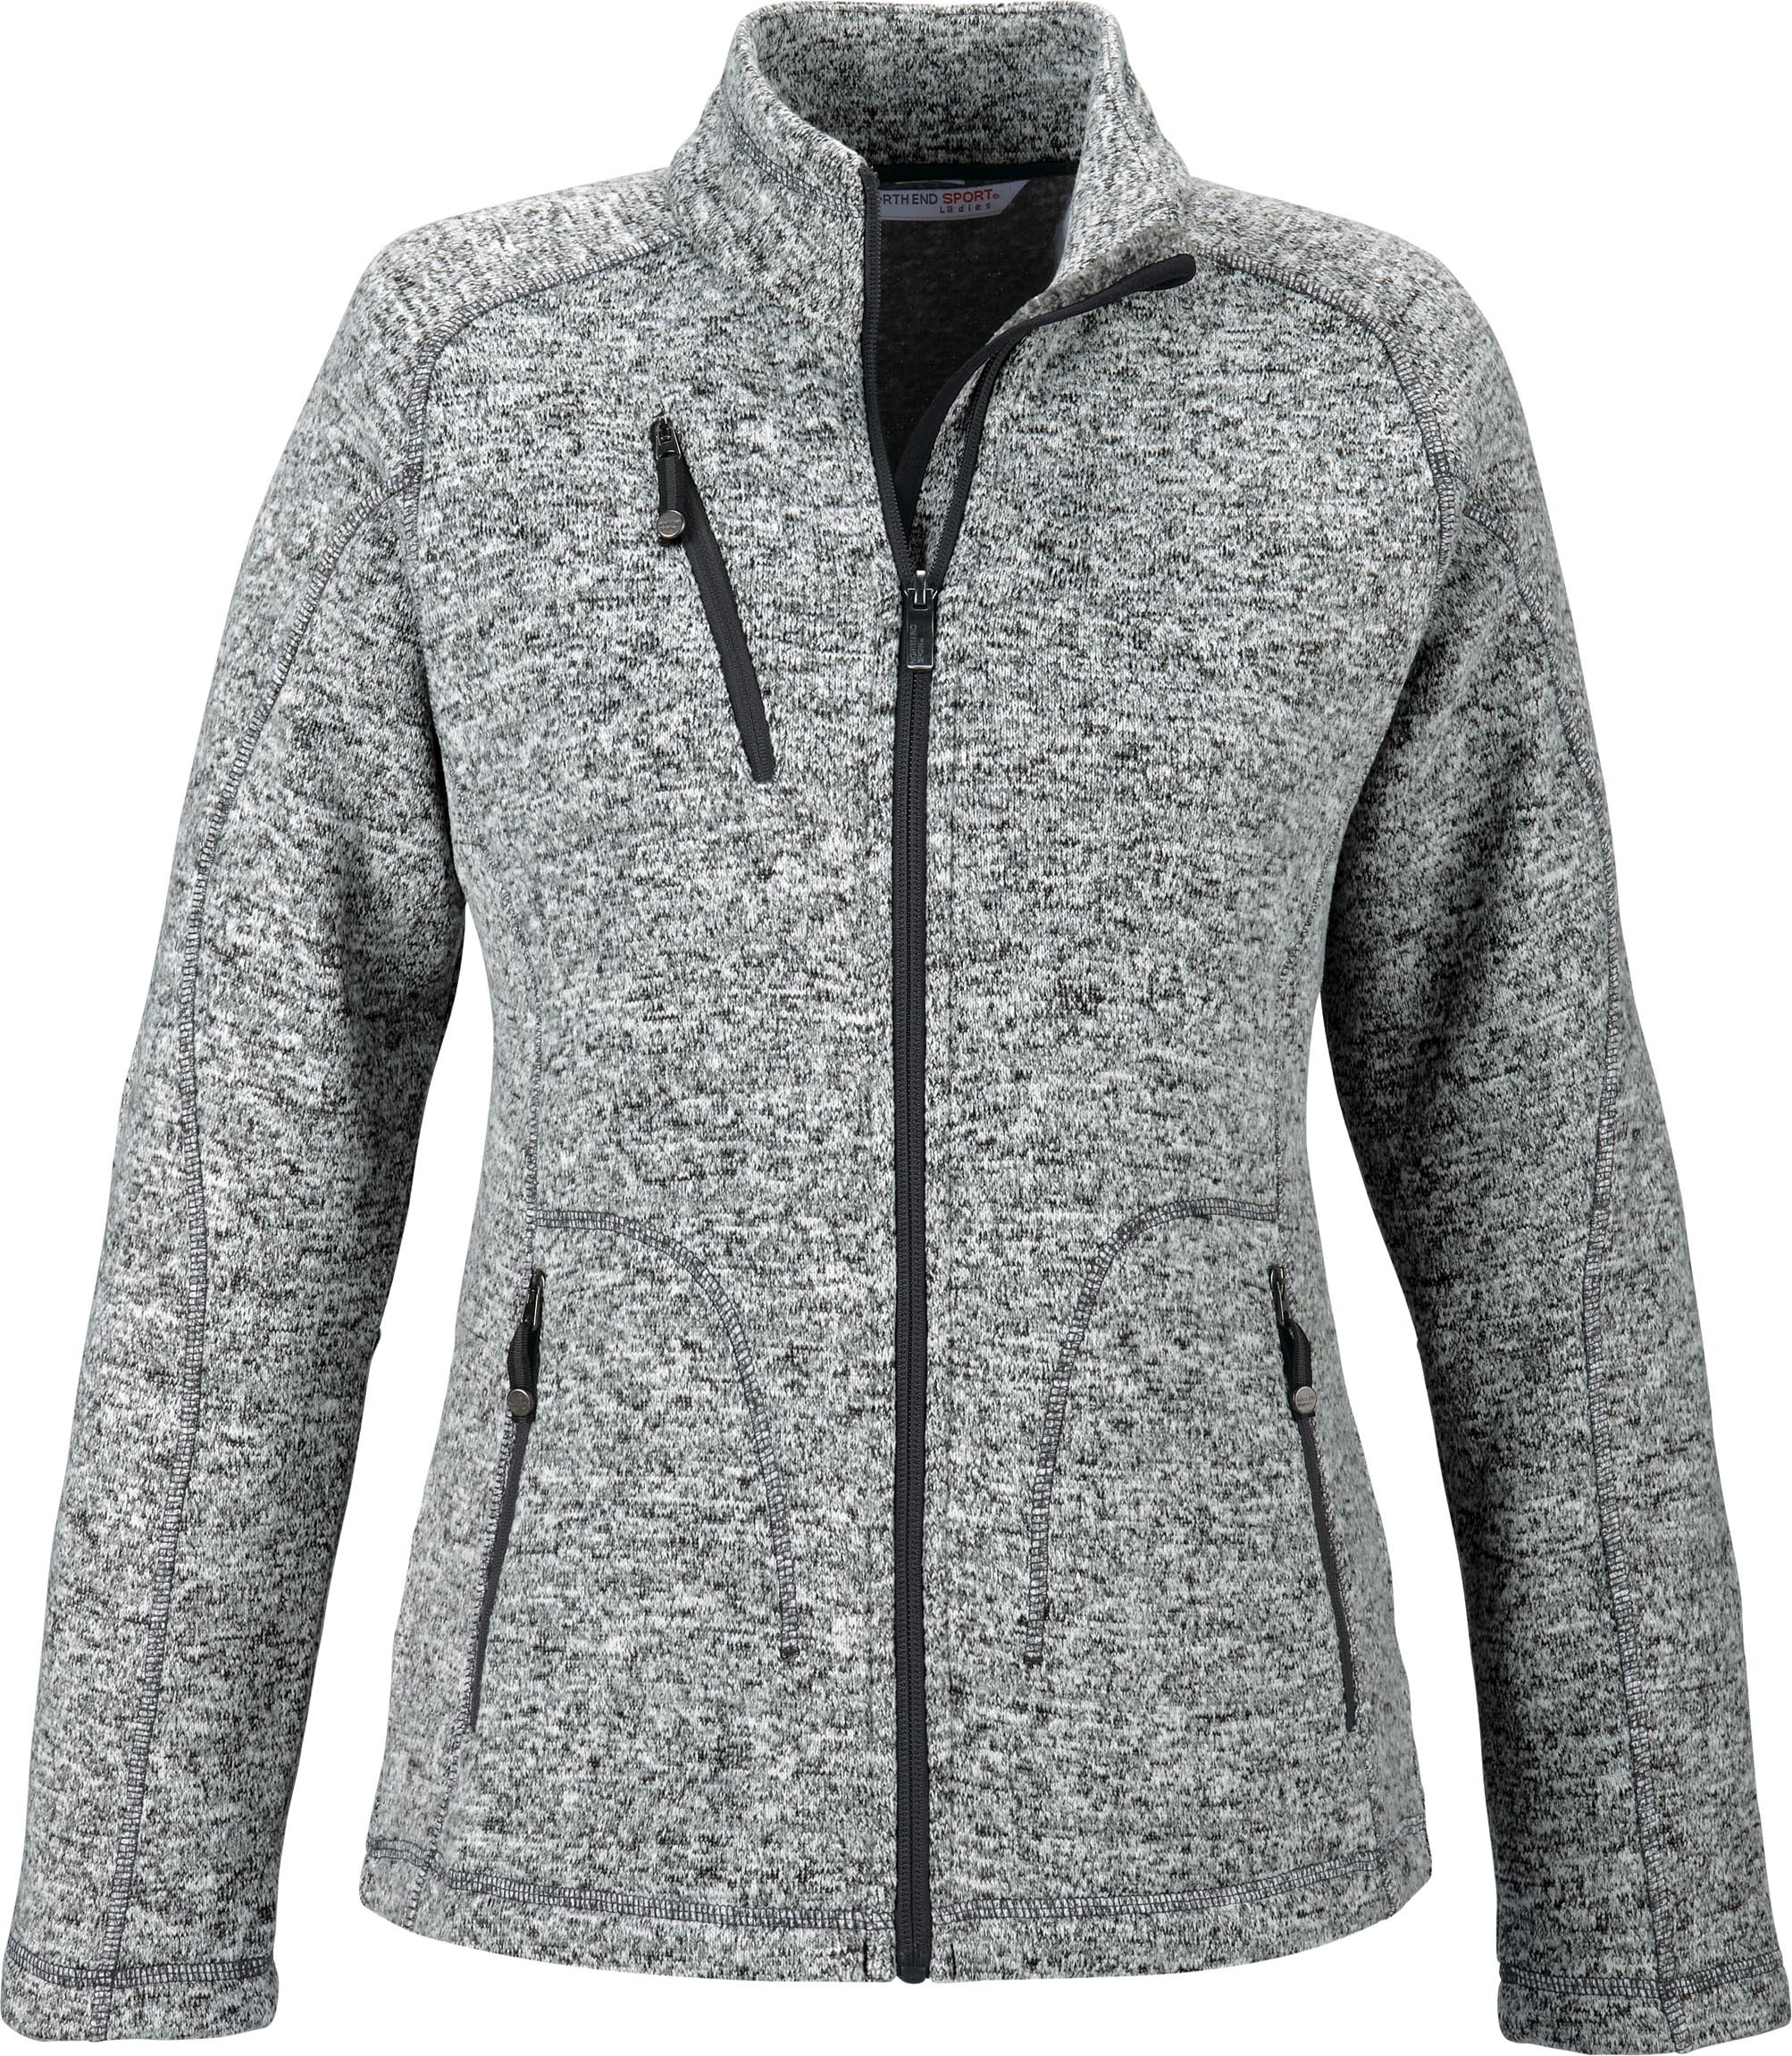 Ash City Poly Fleece 78669 - Peak Ladies' Sweater Fleece ...